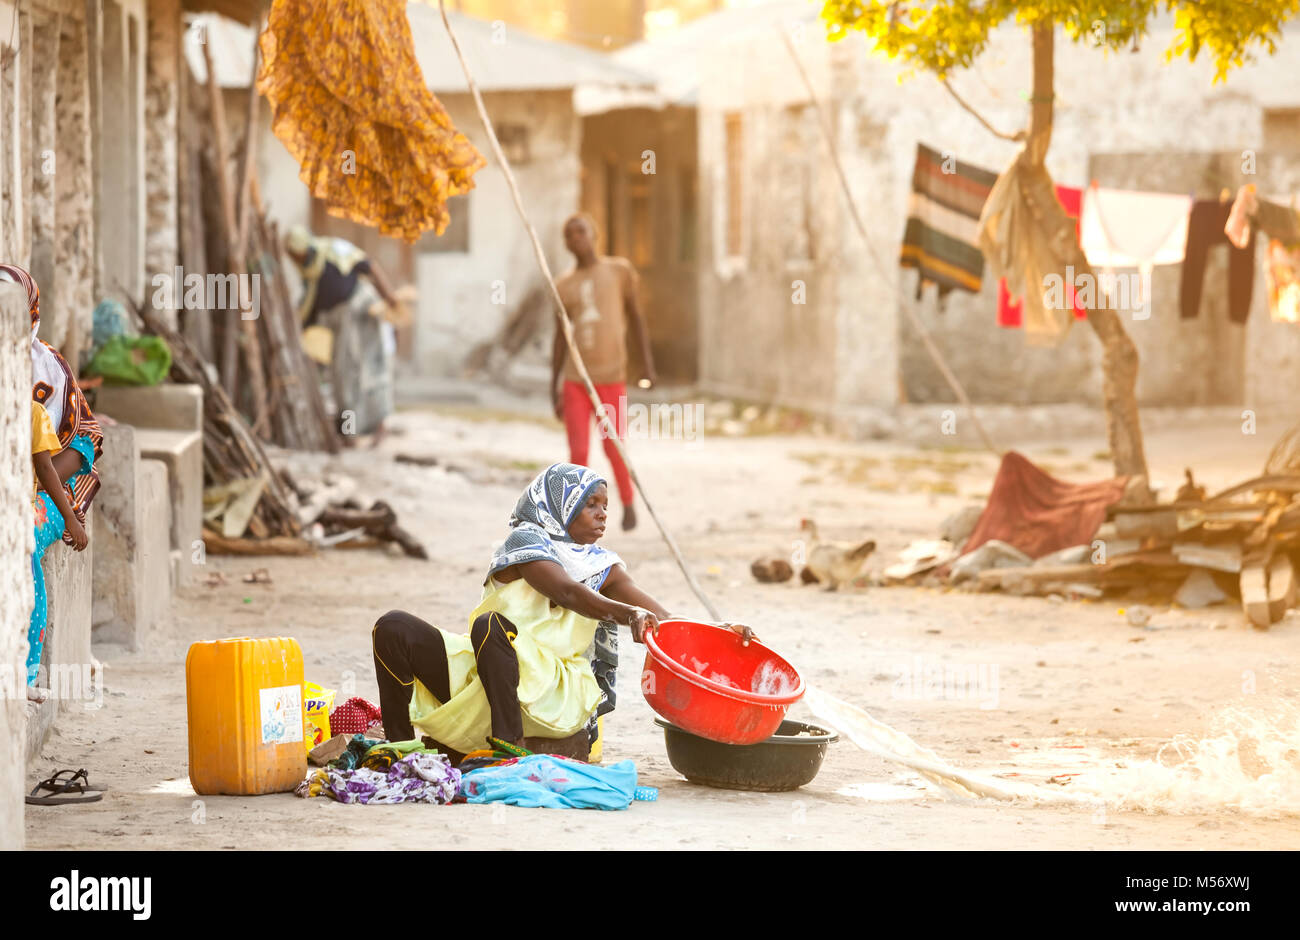 Stone Town, Zanzibar - January 20, 2015: Women throwing out her washing water and sitting on the floor - Stock Image